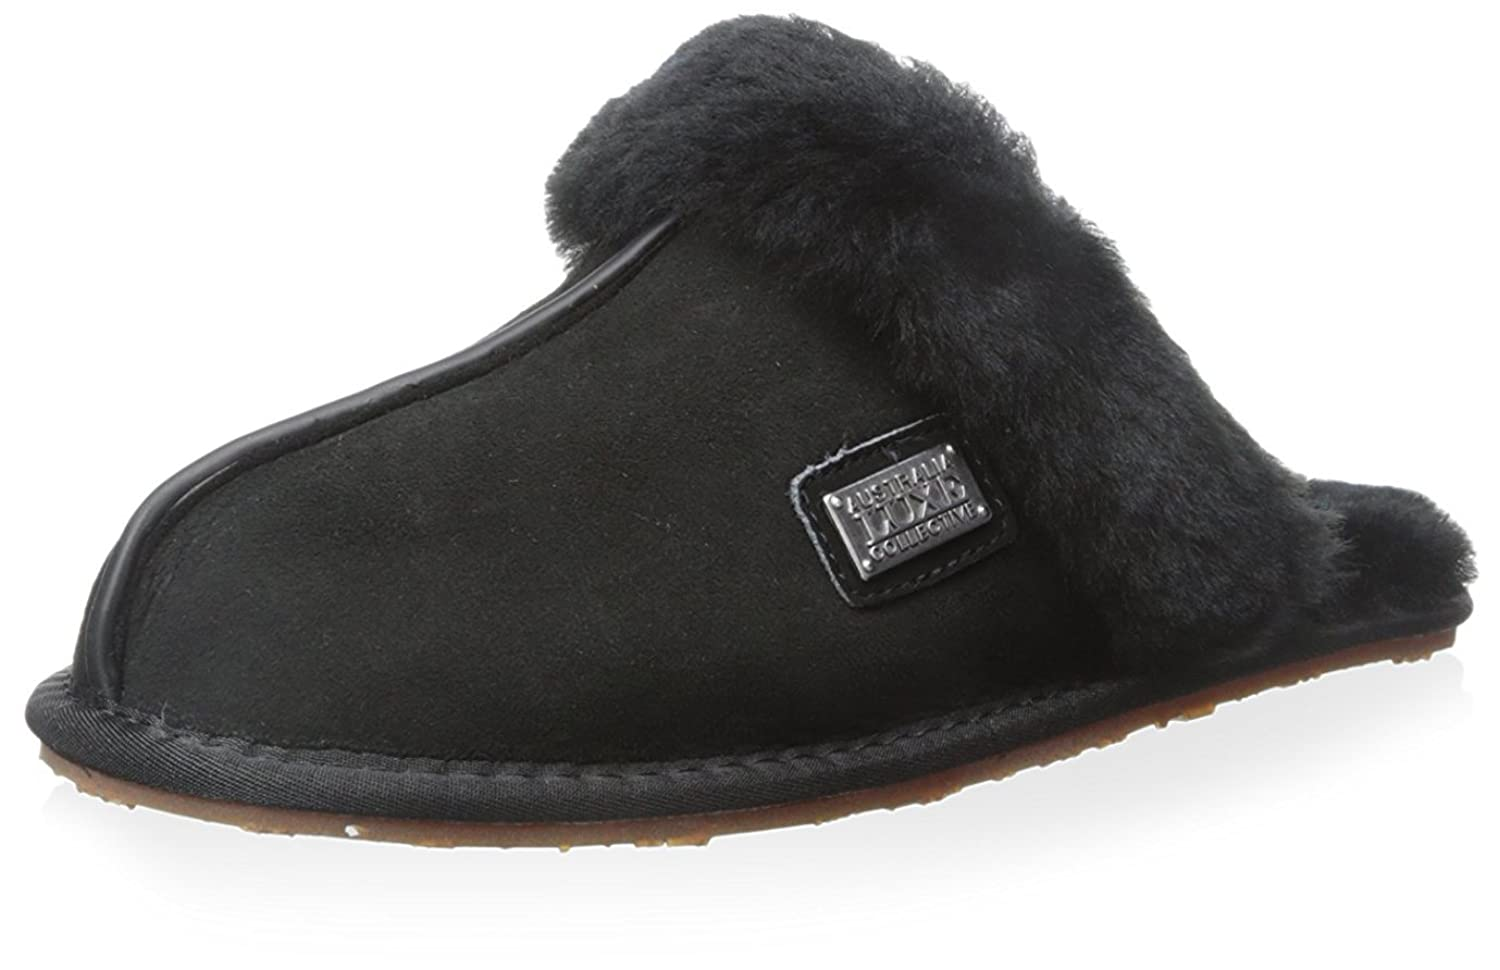 Australia Luxe Collective Women's Closed Mule